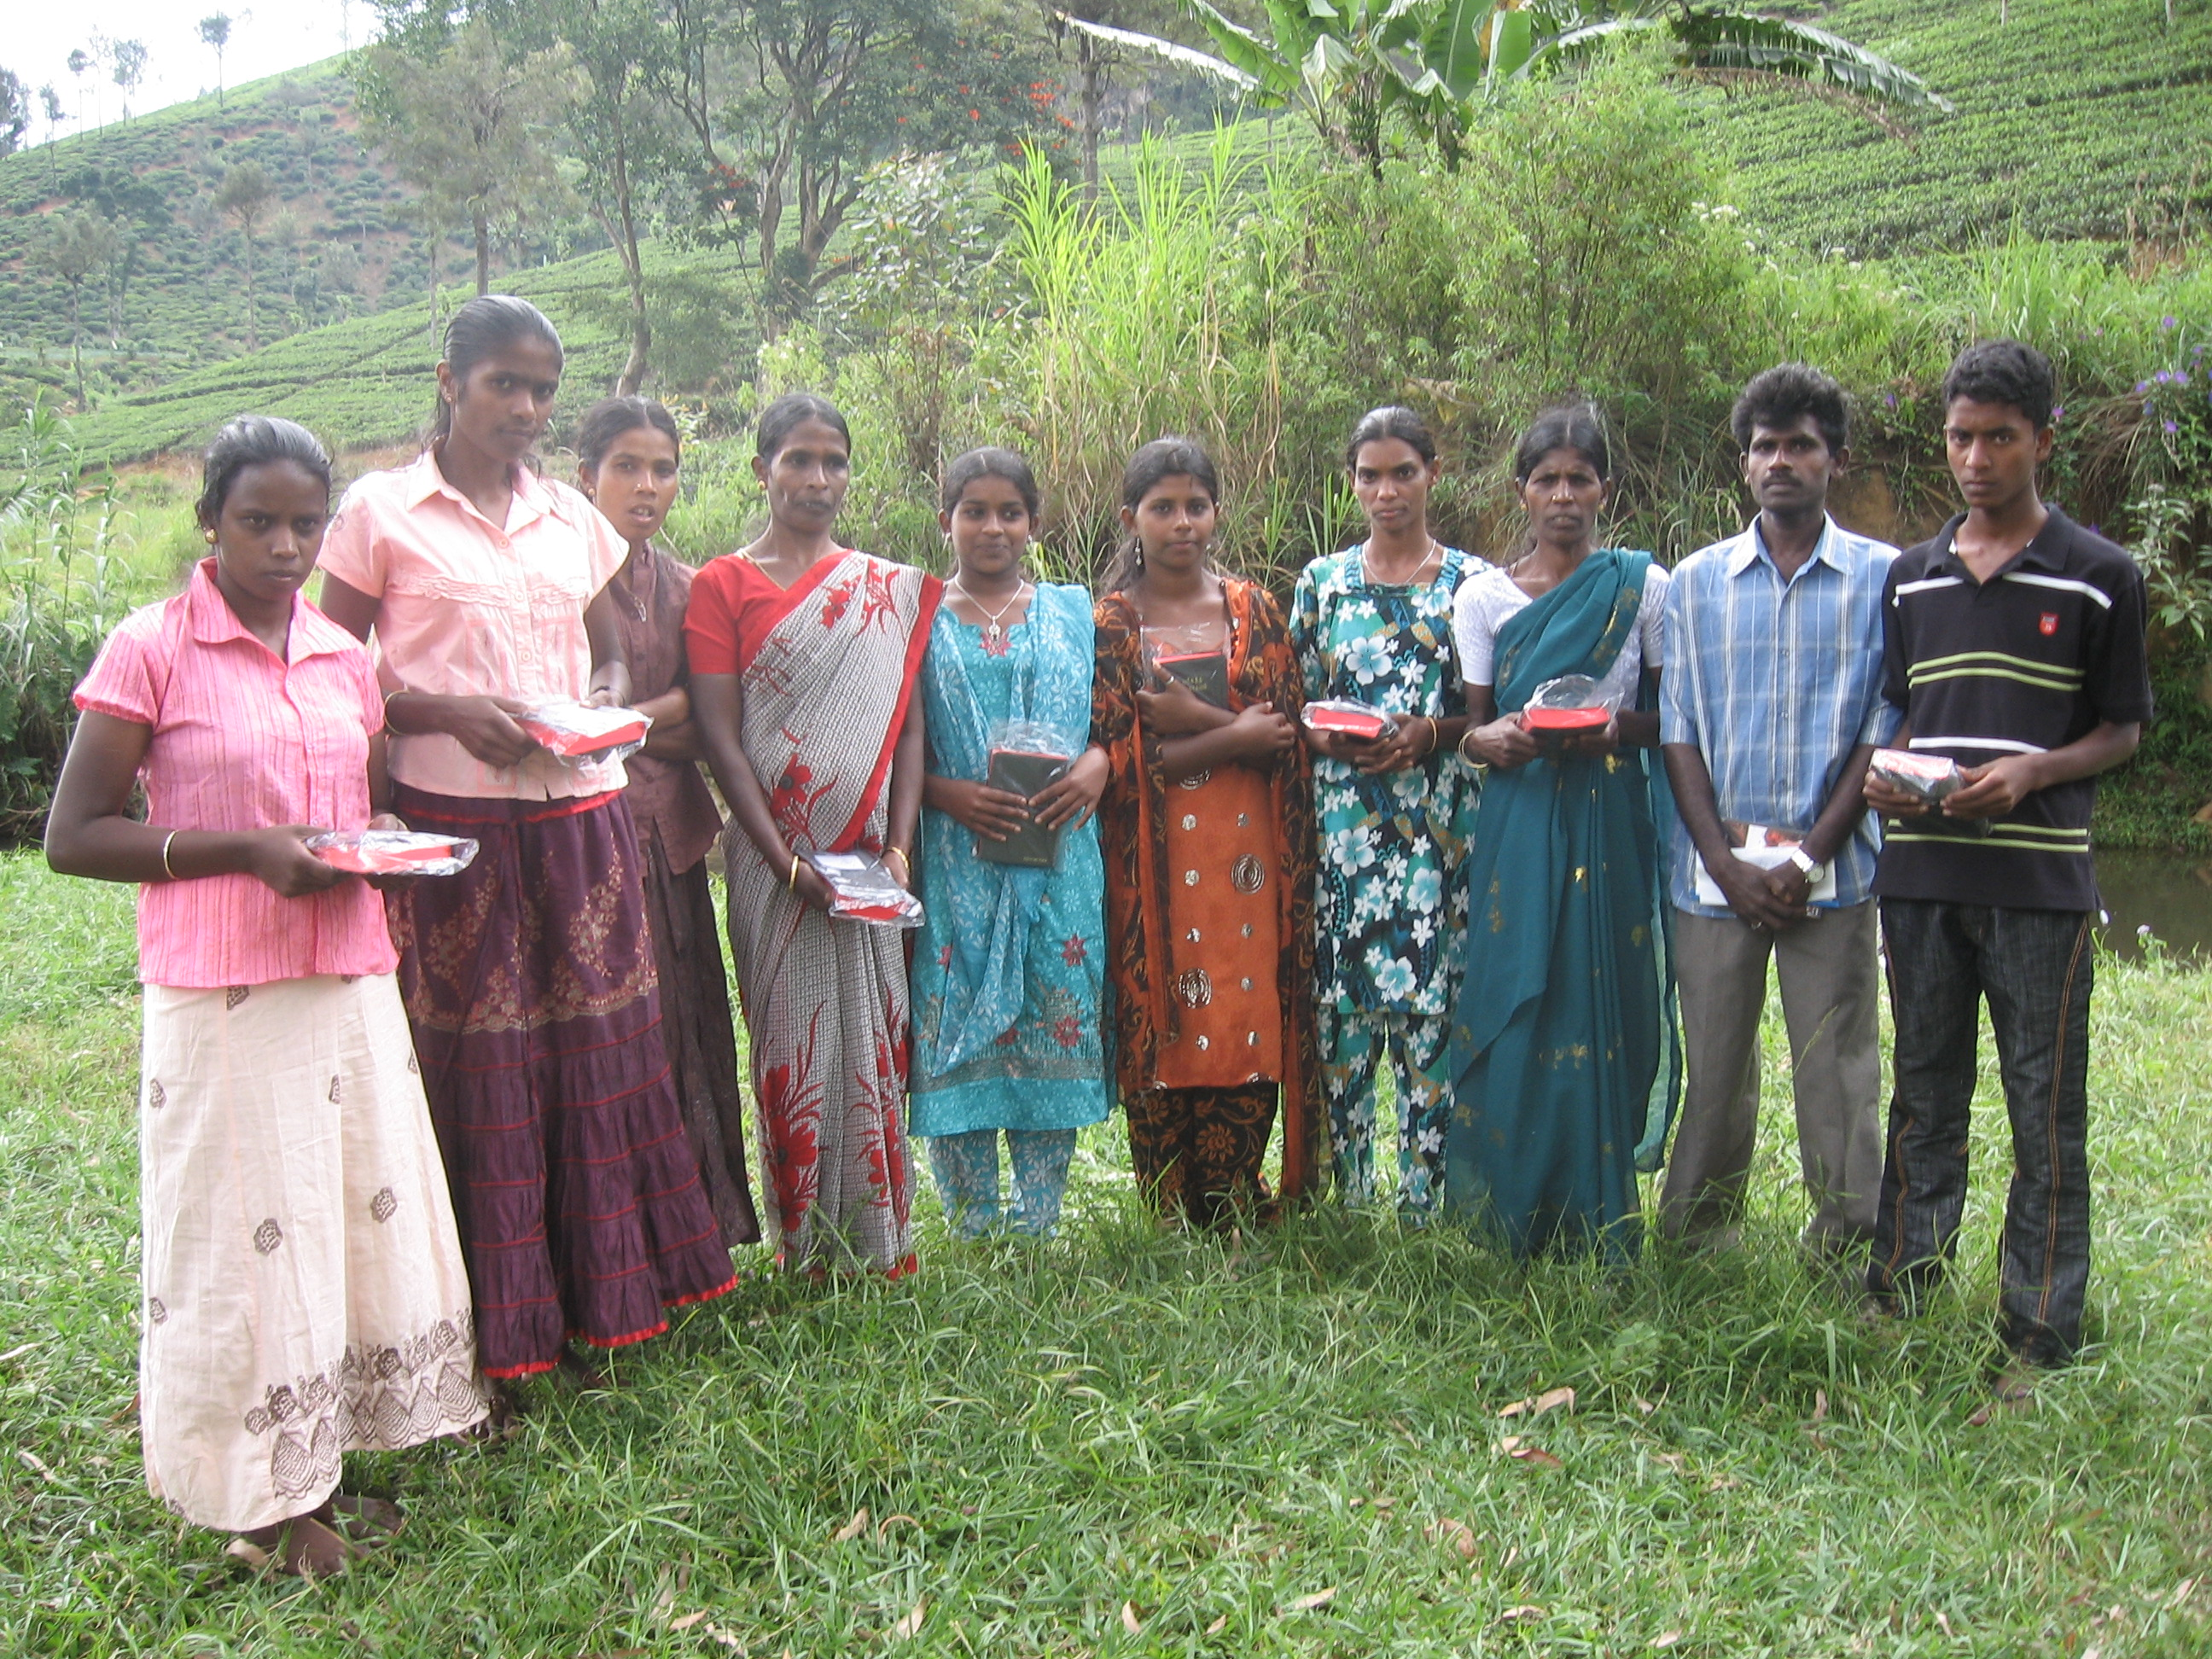 new believers receiving Bibles